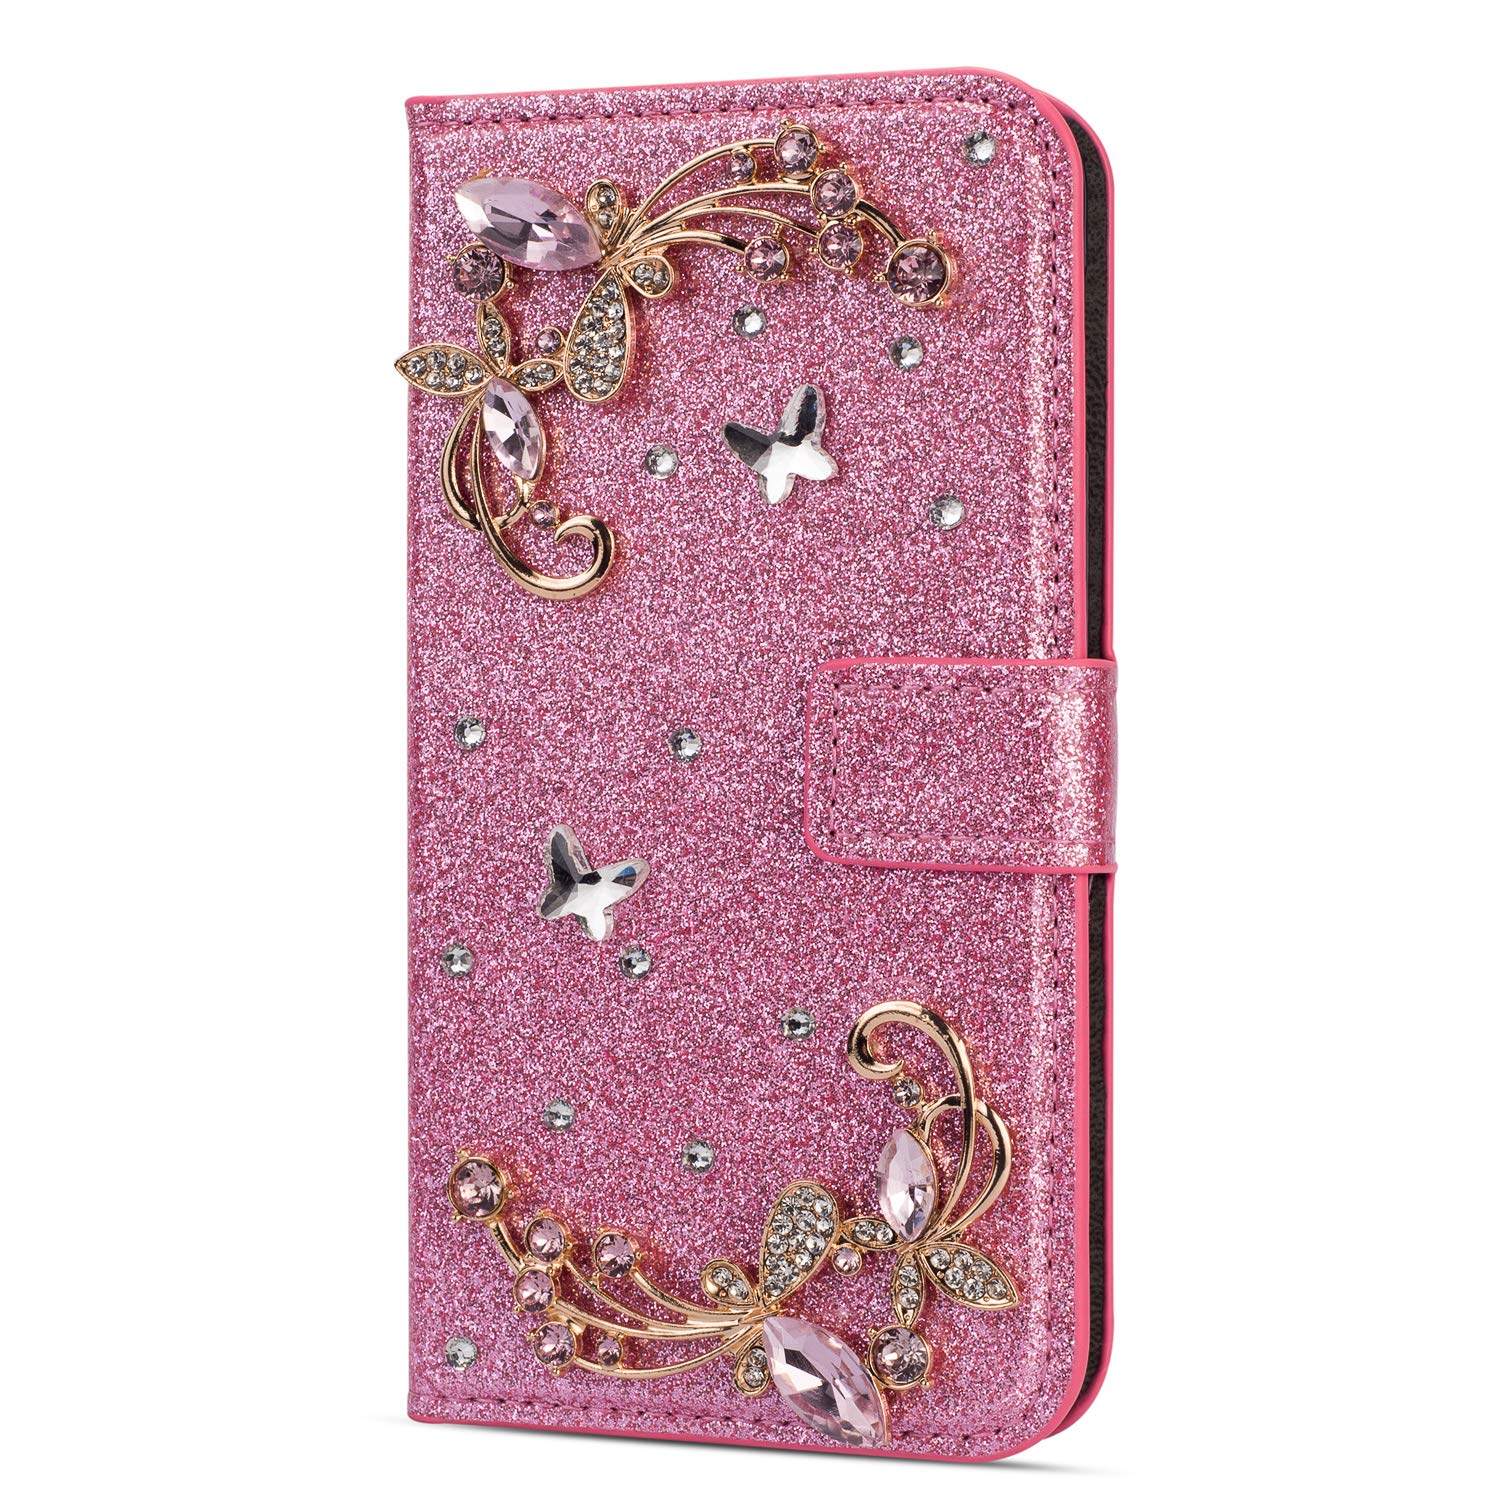 Amocase Glitter Case with 2 in 1 Stylus for iPhone SE,Luxury Diamond 3D Crystal Butterfly Flower Magnetic Wallet Soft PU Leather Stand Shockproof Case for iPhone SE/5/5S - Pink by Amocase